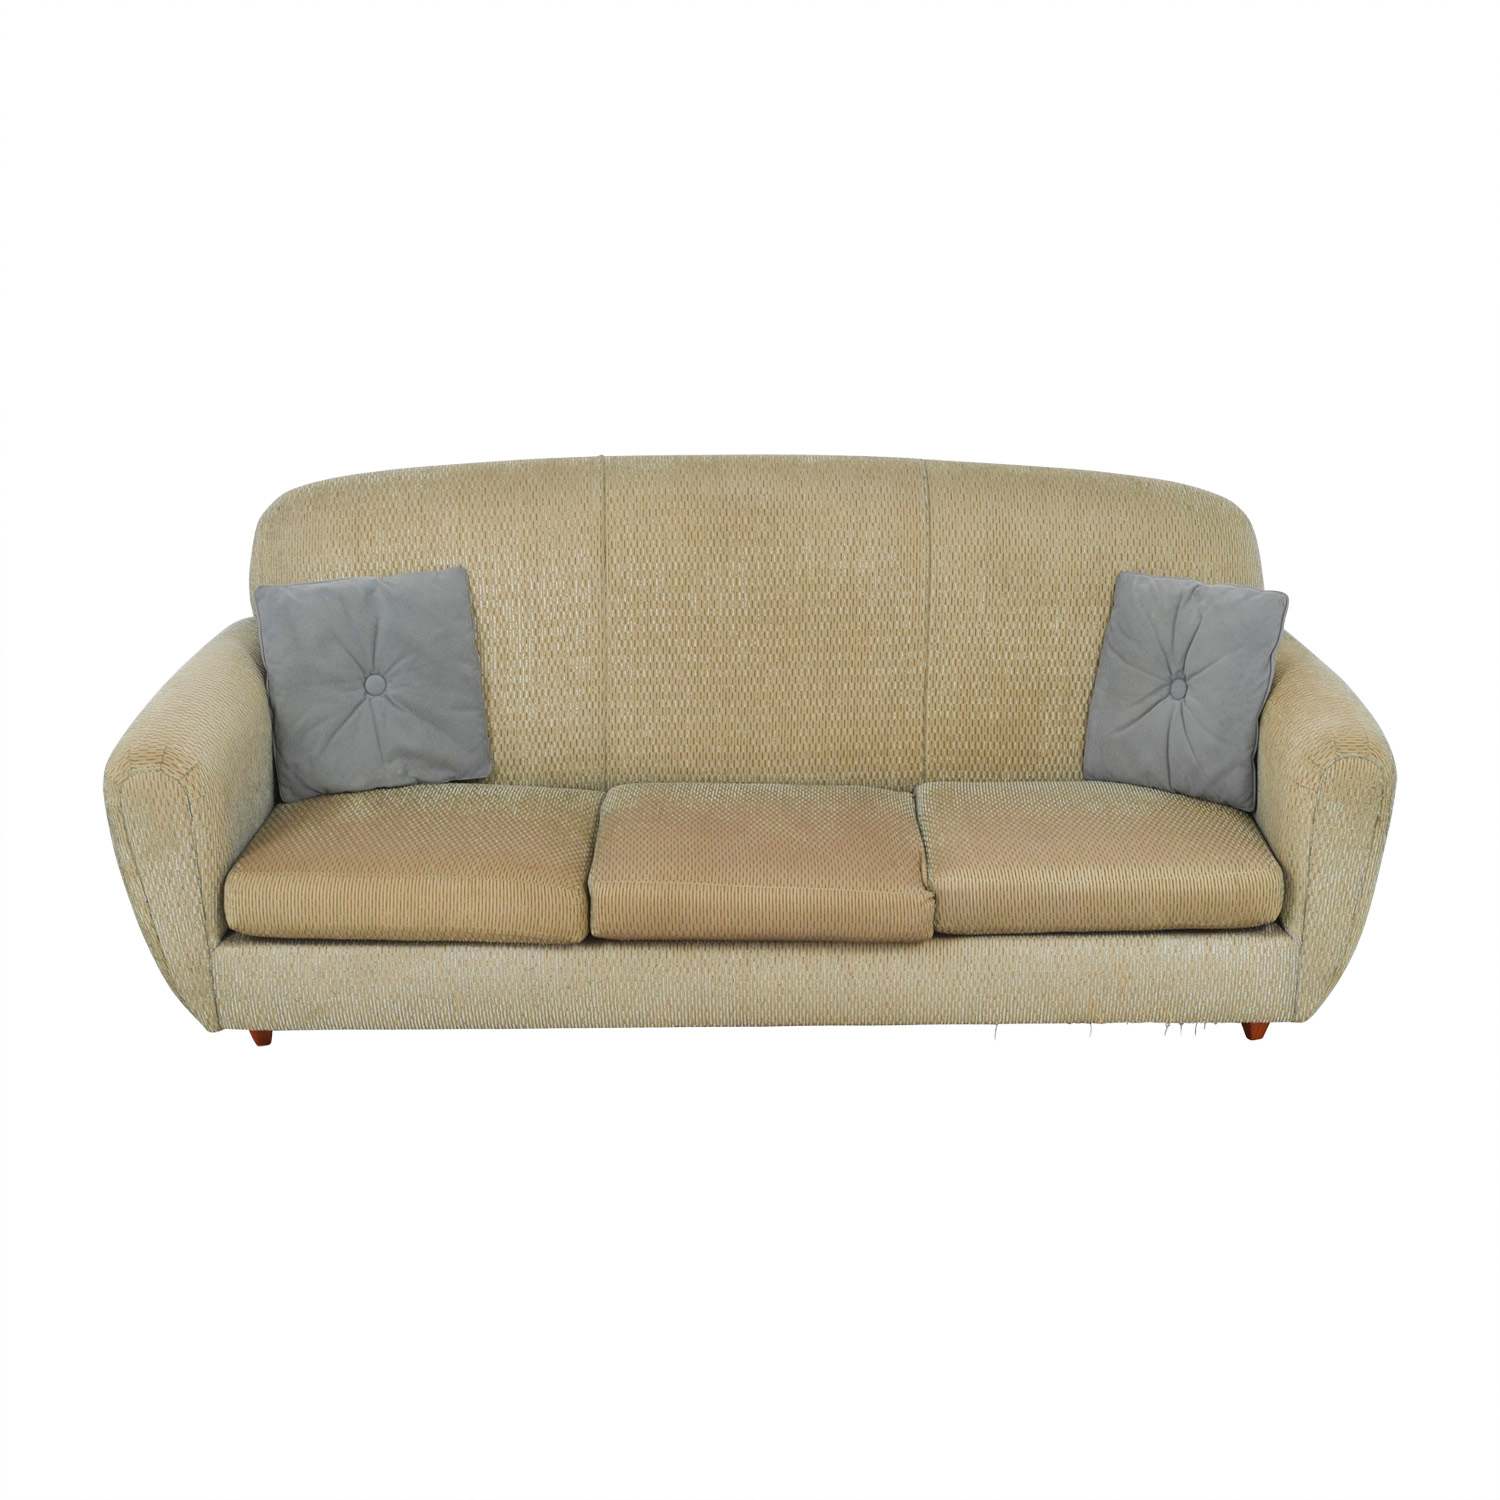 colored sofas sofa bed for small space 90 off green multi three cushion